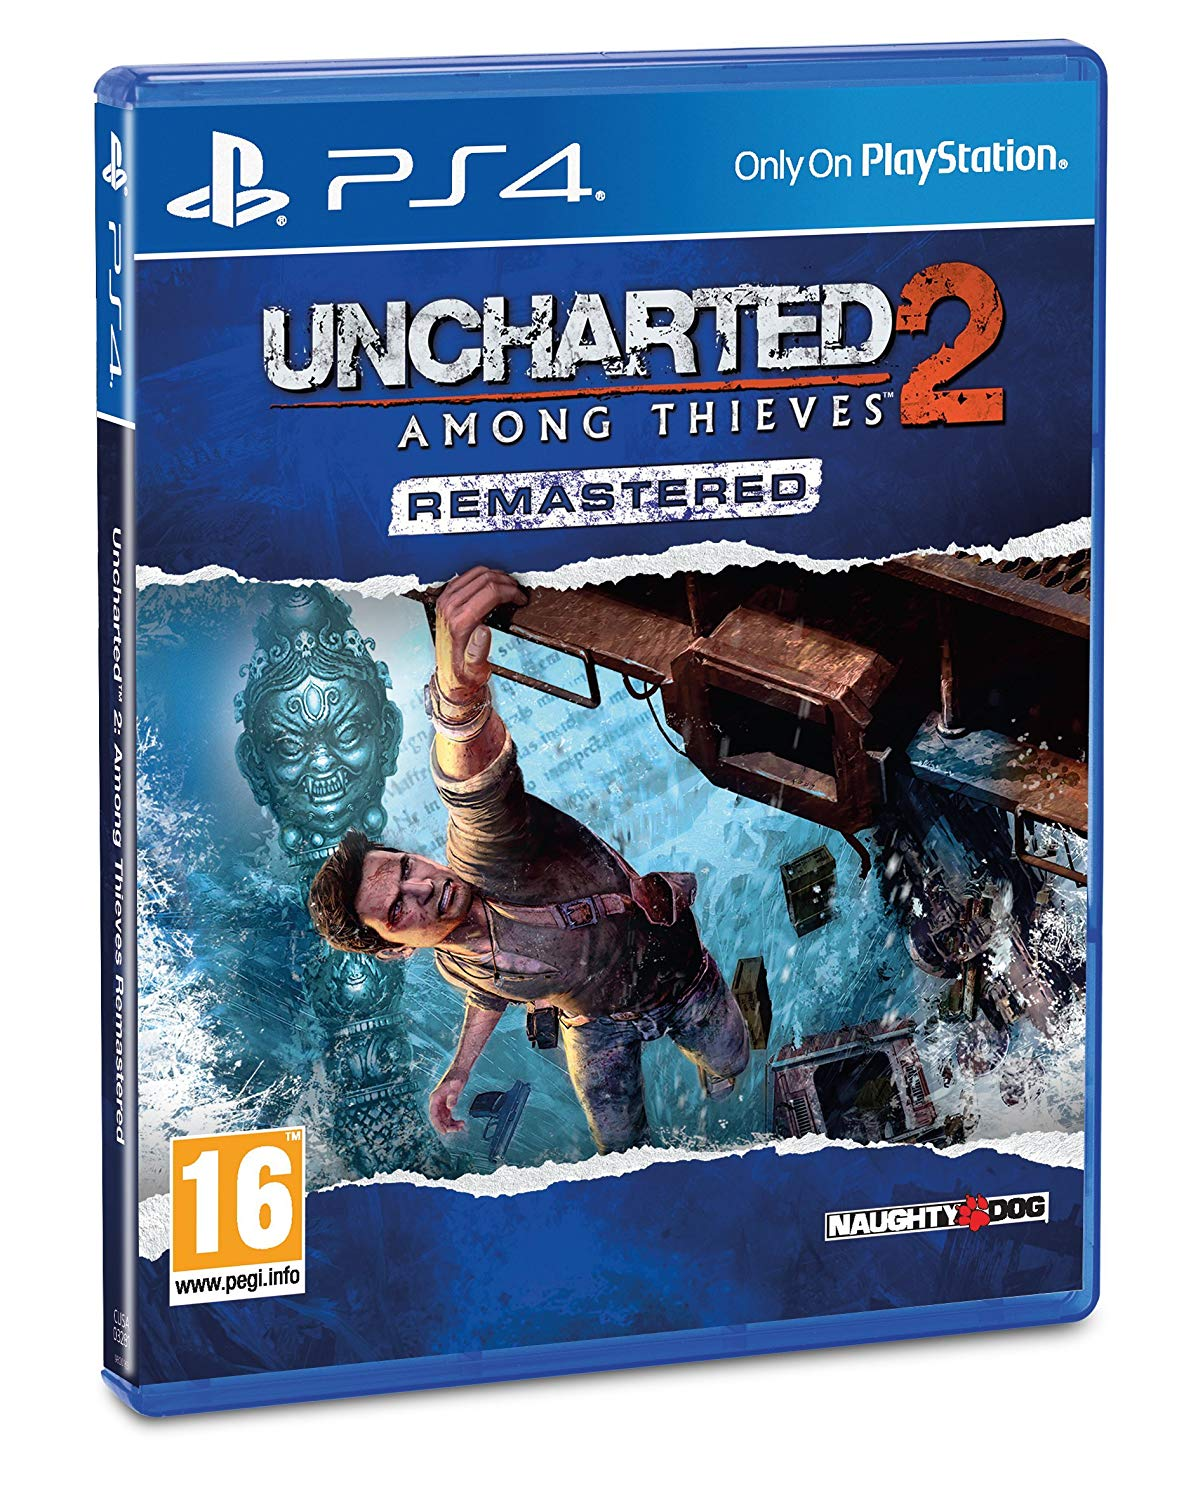 UNCHARTED 2: AMONG THIEVES REMASTERED - PS4